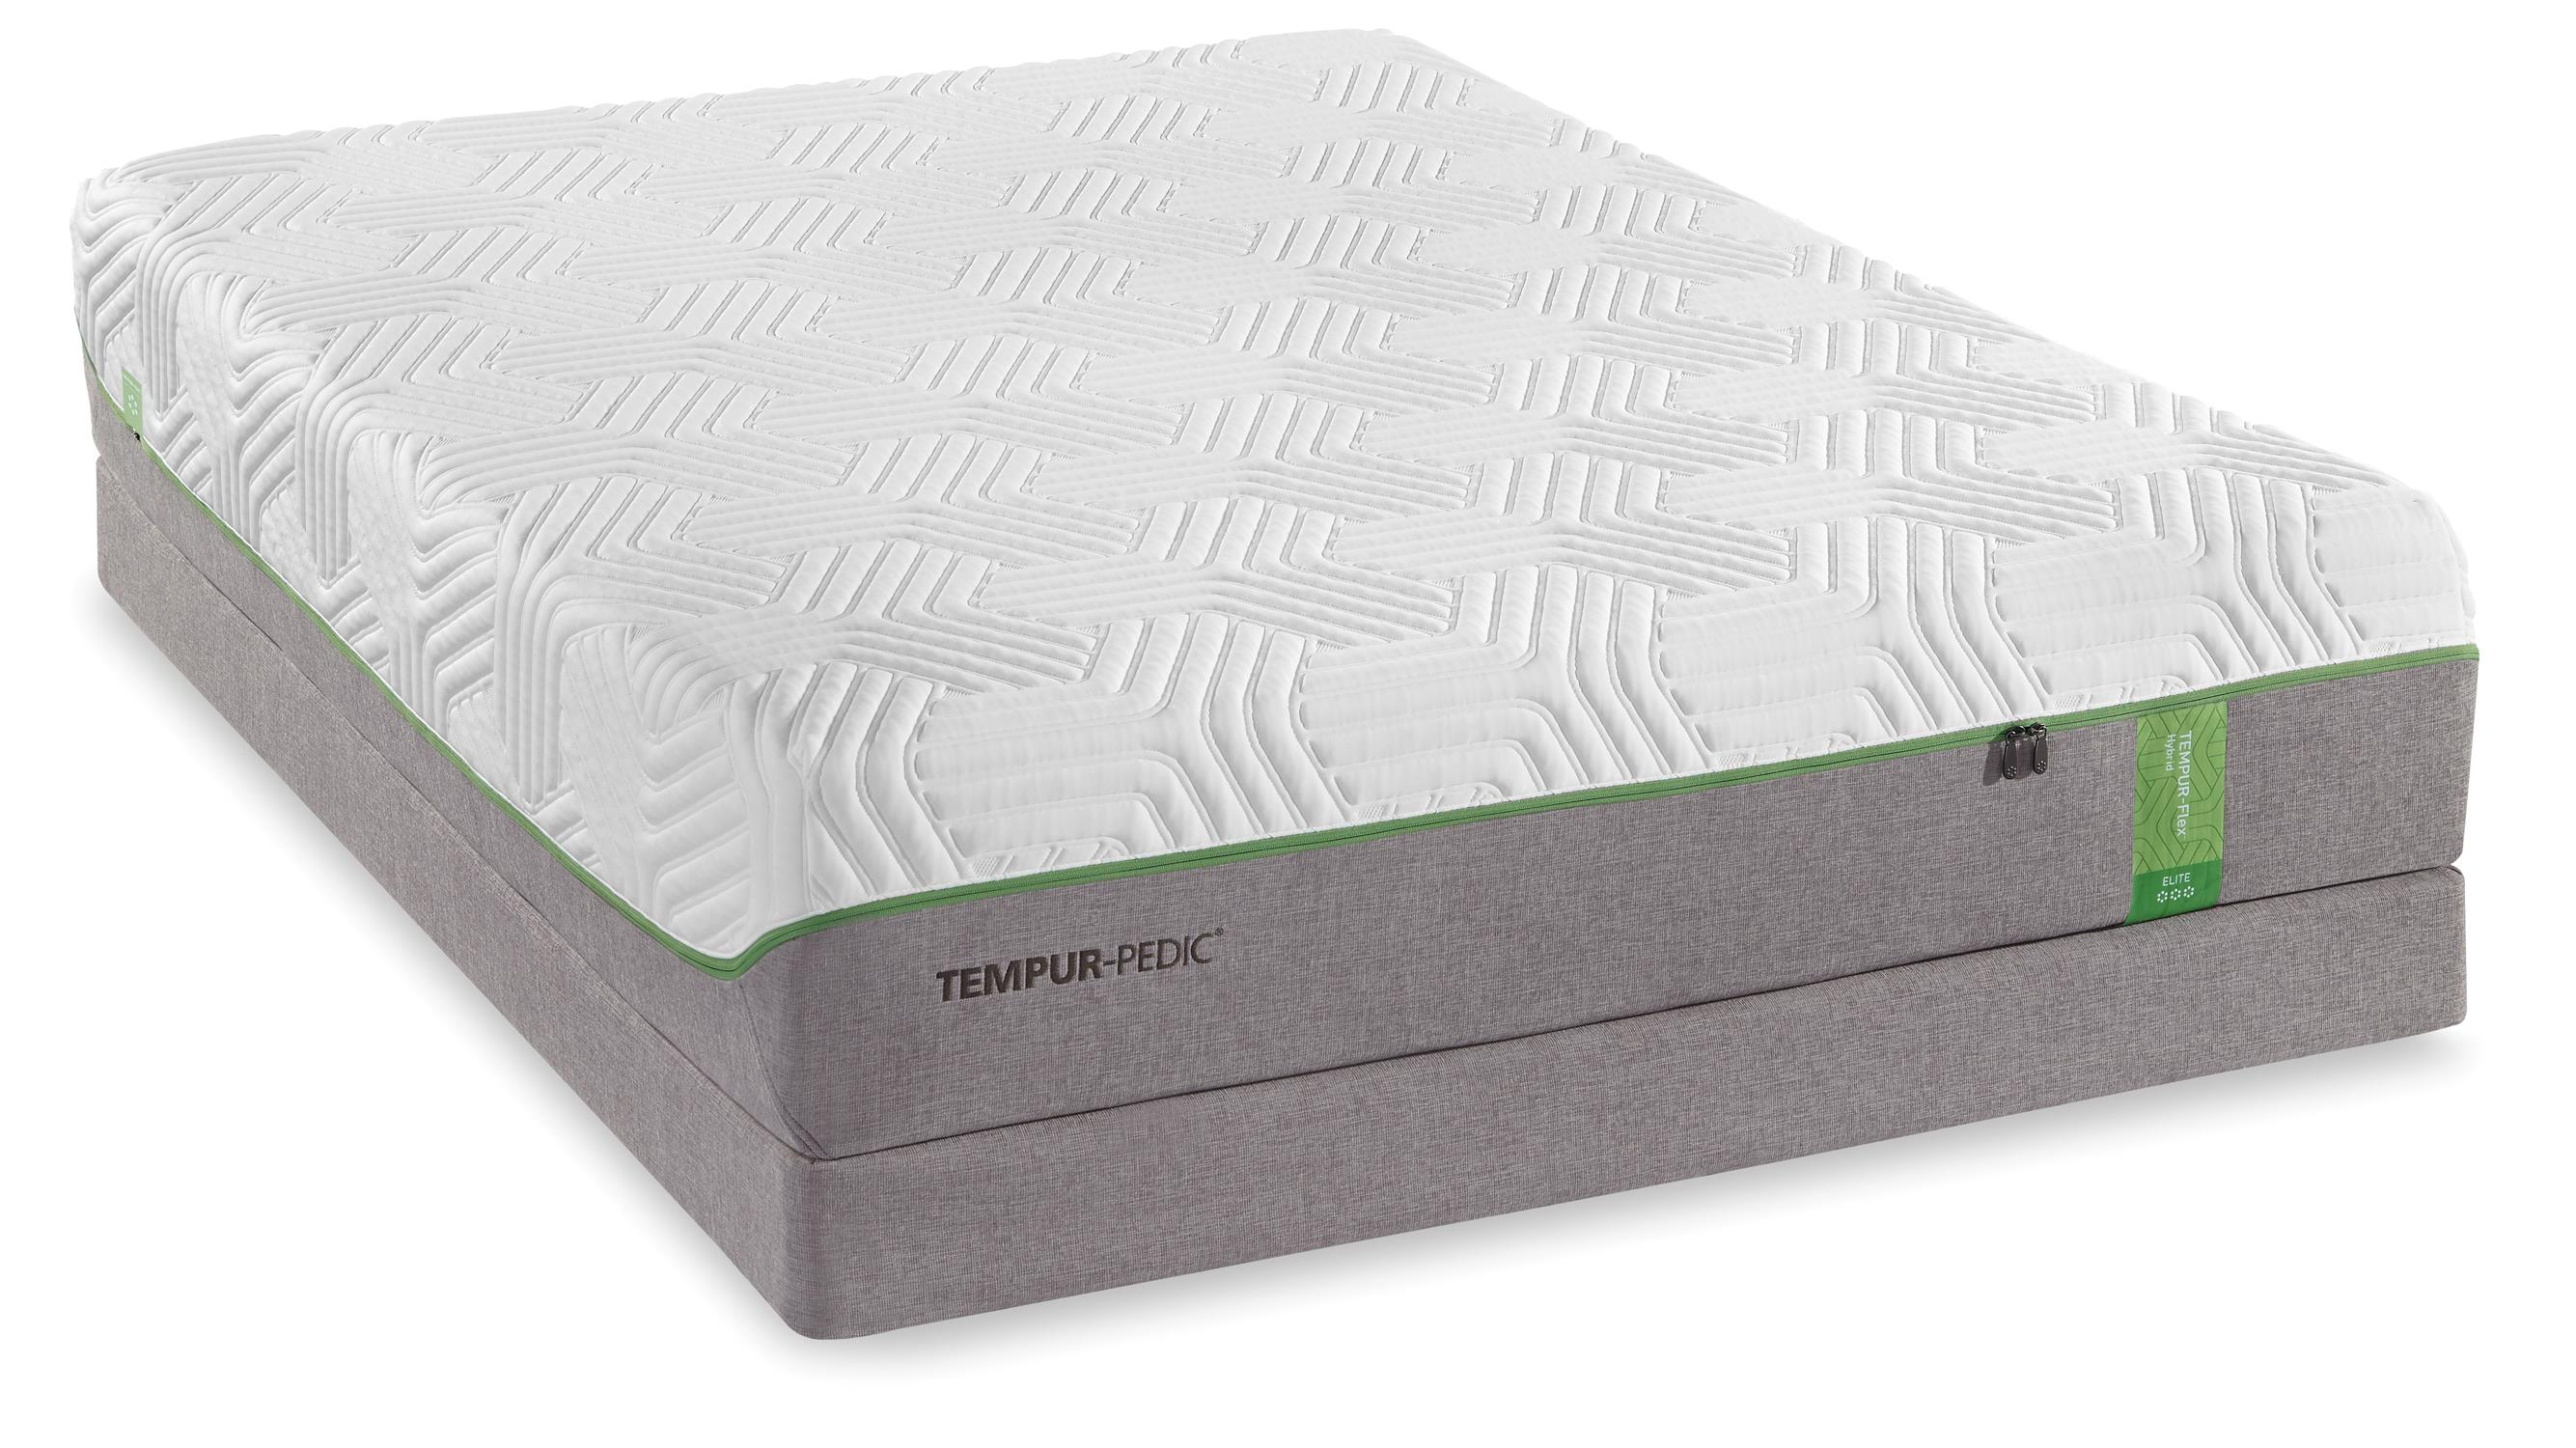 Tempur-Pedic® TEMPUR-Flex Elite Queen Medium Soft Plush Mattress Set - Item Number: 10117150+20510150